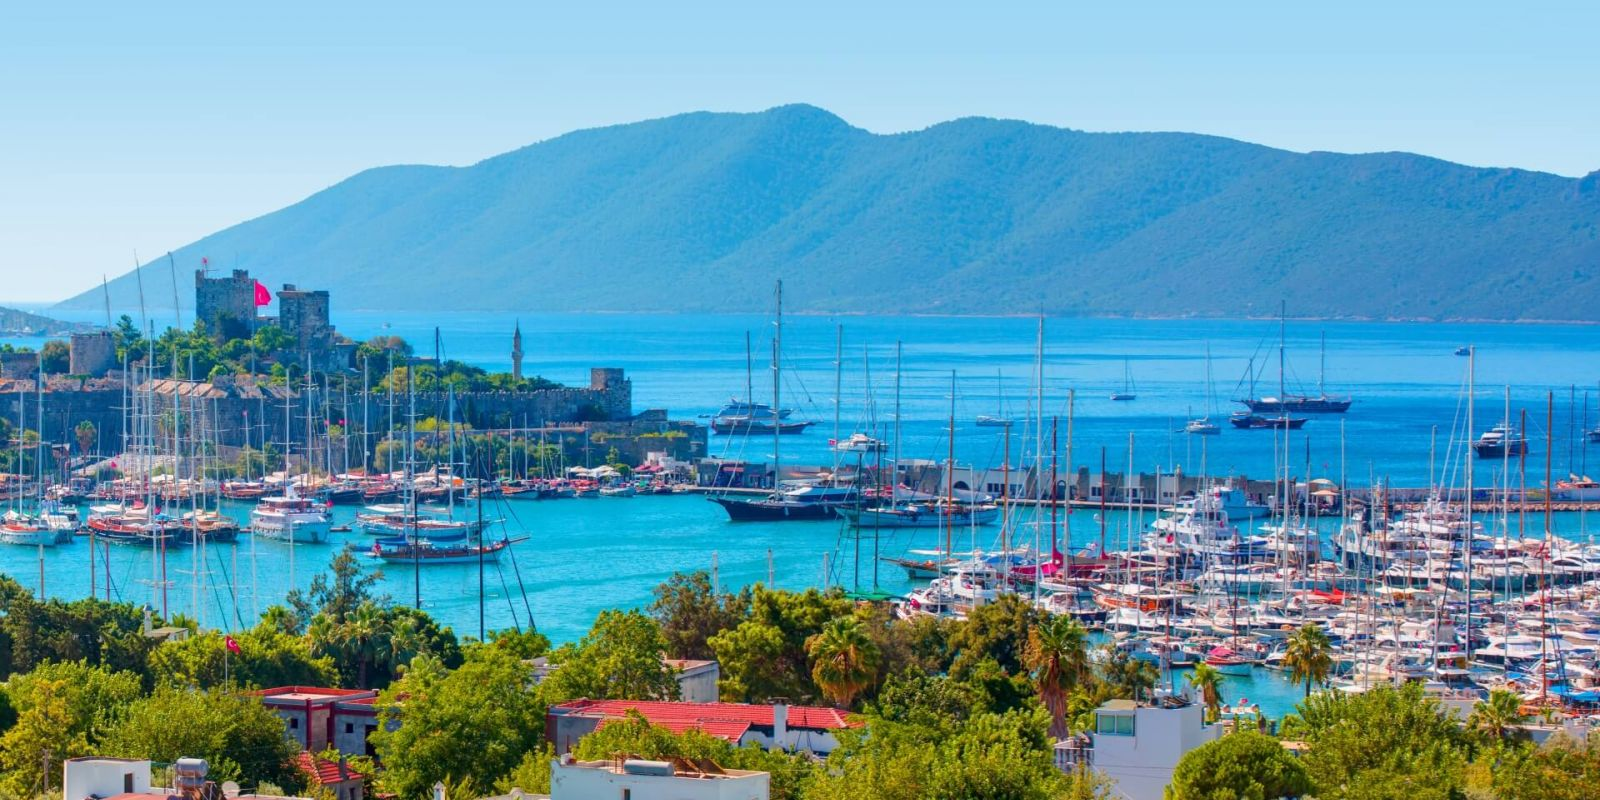 https://www.talamare.com/medias/Panorama of Bodrum with its castle and marina in the Aegean sea during a Turkey yacht charter